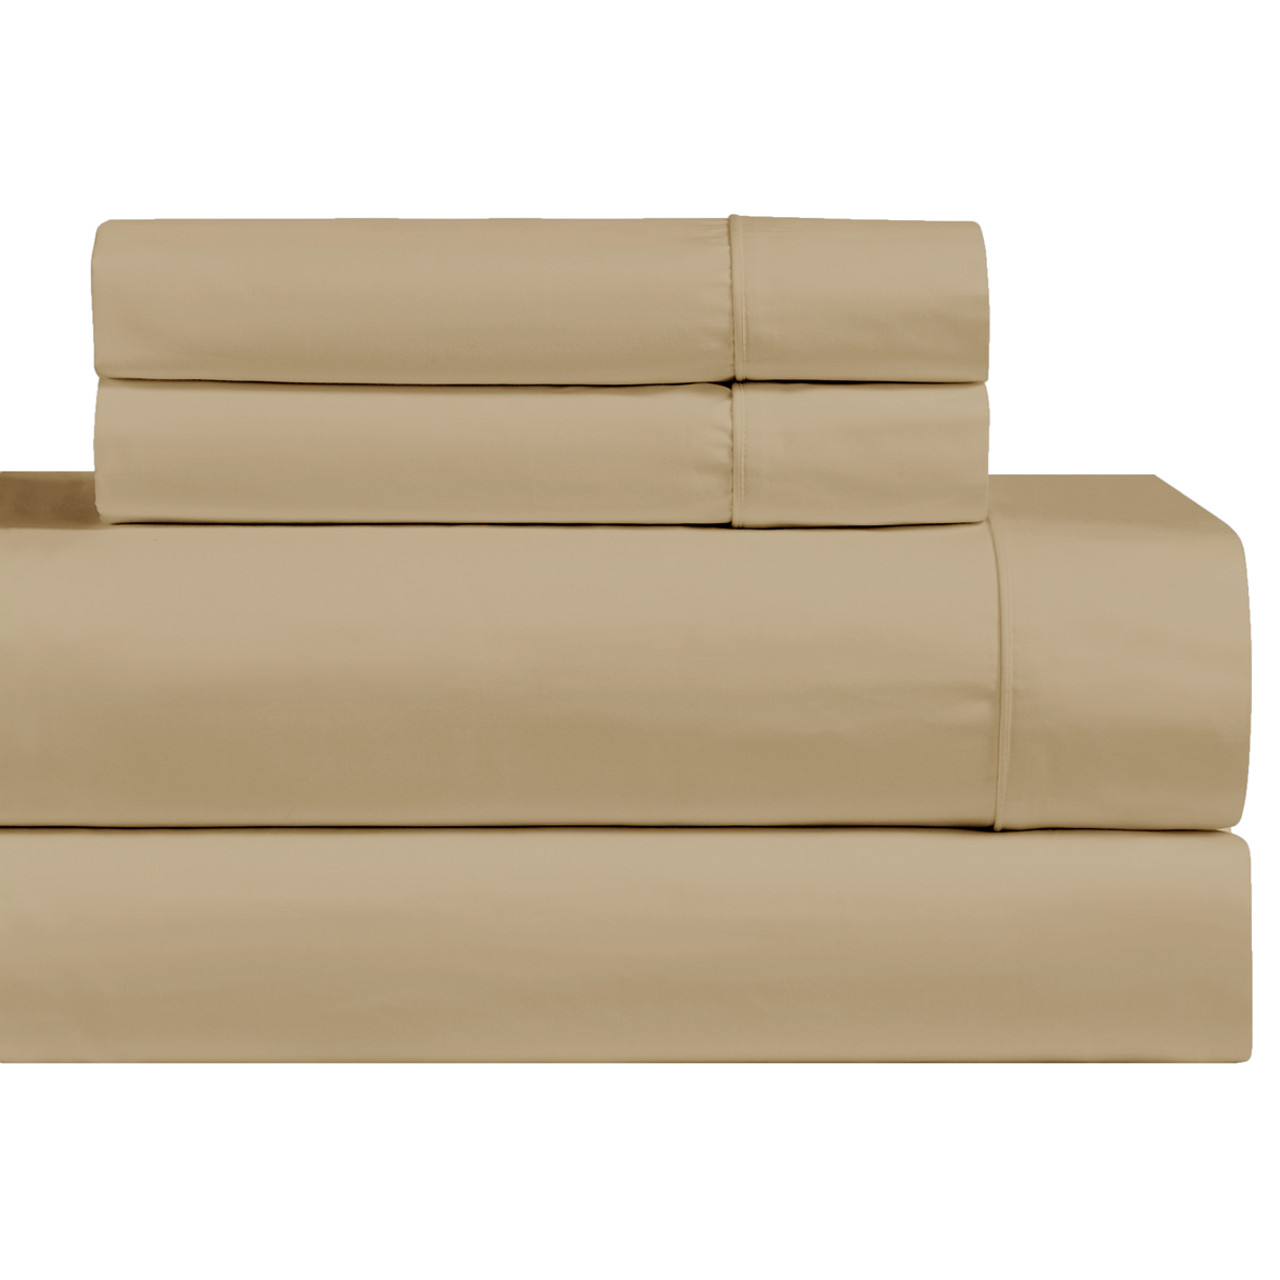 California King Size Bed Sheets 100 Cotton 1000 Thread Count Sheet